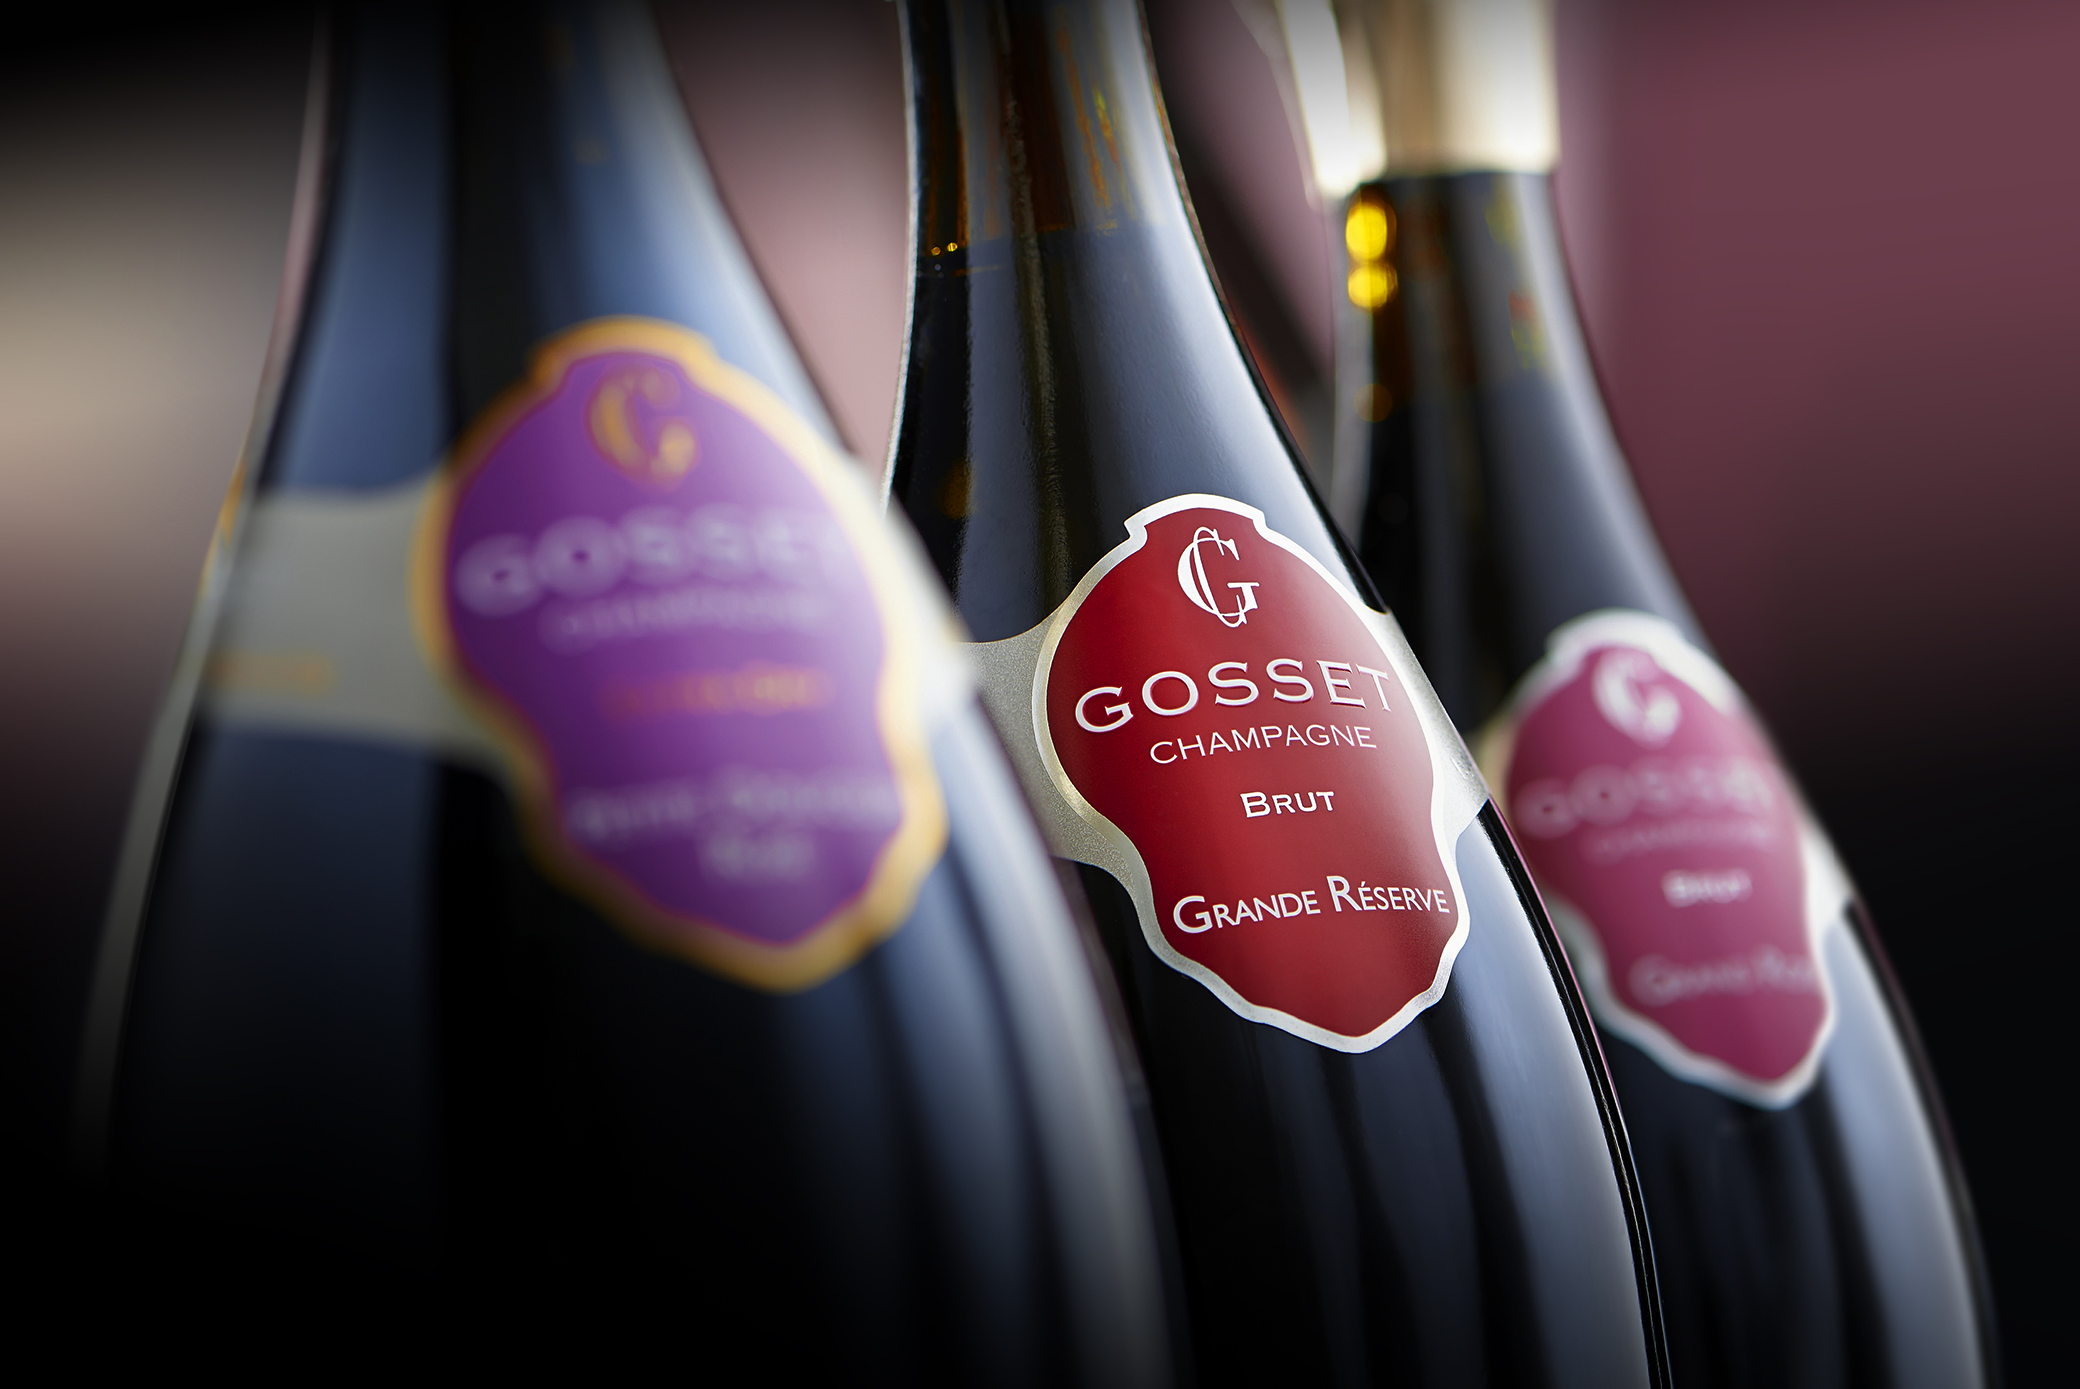 bottles of champagne: Winners of Gosset Champagne Matchmakers competition revealed